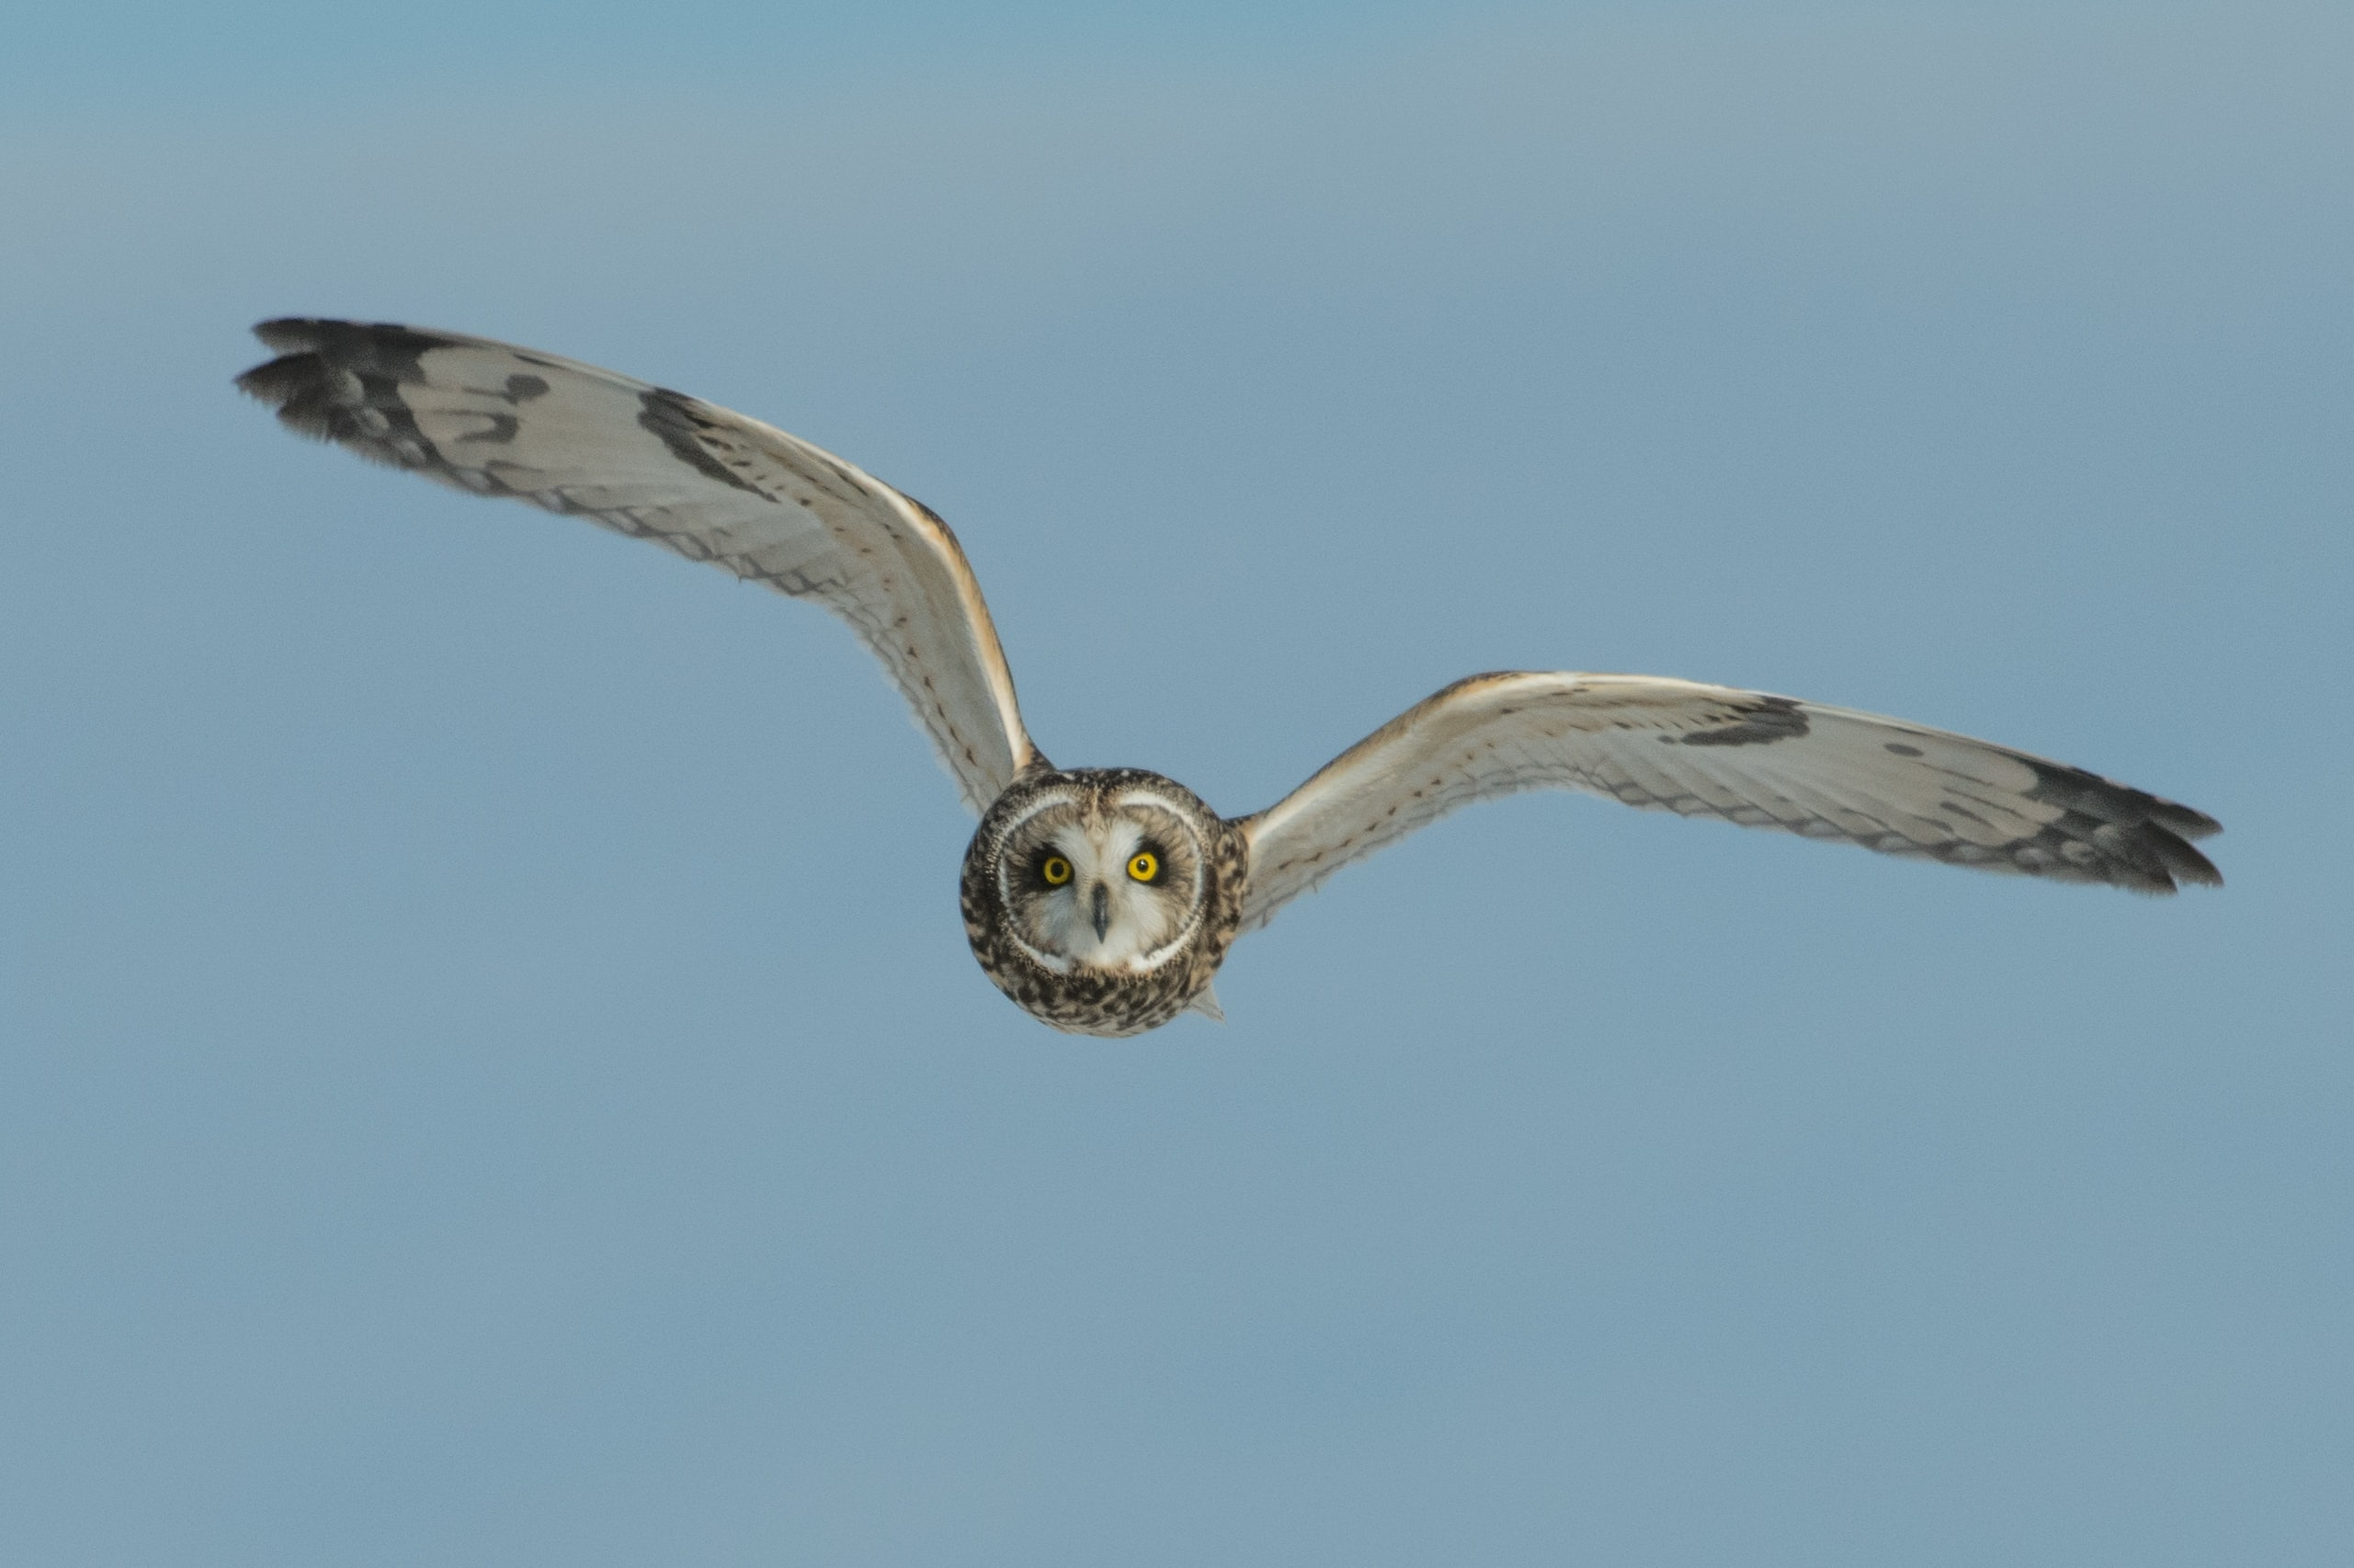 flying white and black barn owl during daytime